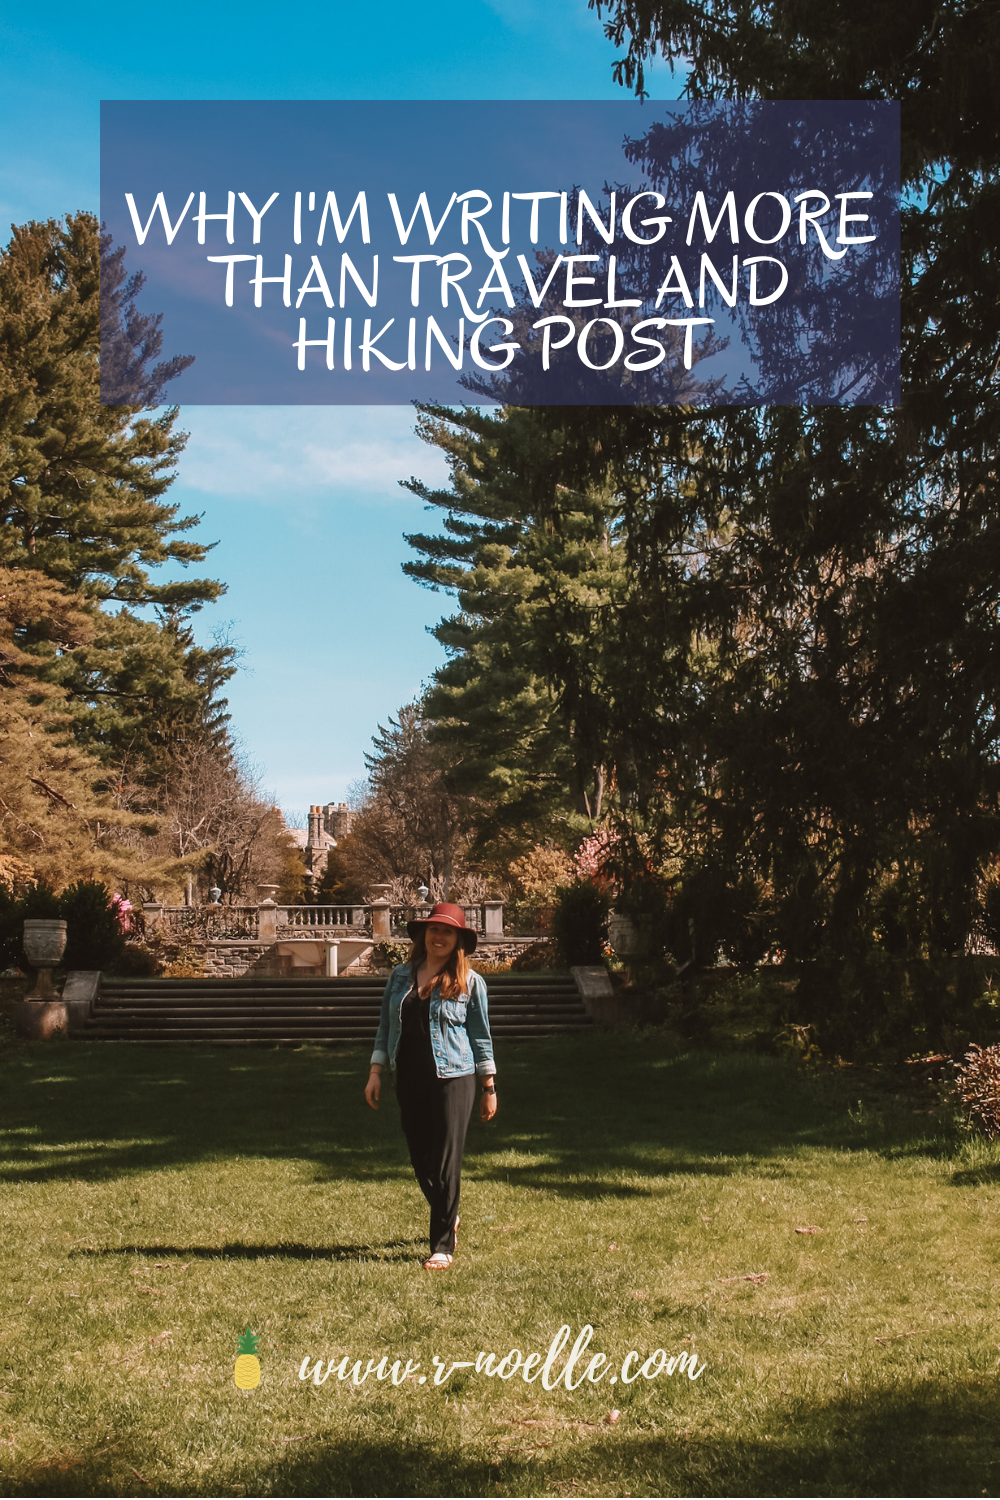 I enjoy writing travek blog post but I've wanted to write more than adventure travel. To maintain adventure travel you need to have a lifestyle that supports that. From budgeting for an adventure, health and wellnes between adventures, and anything inbetween.